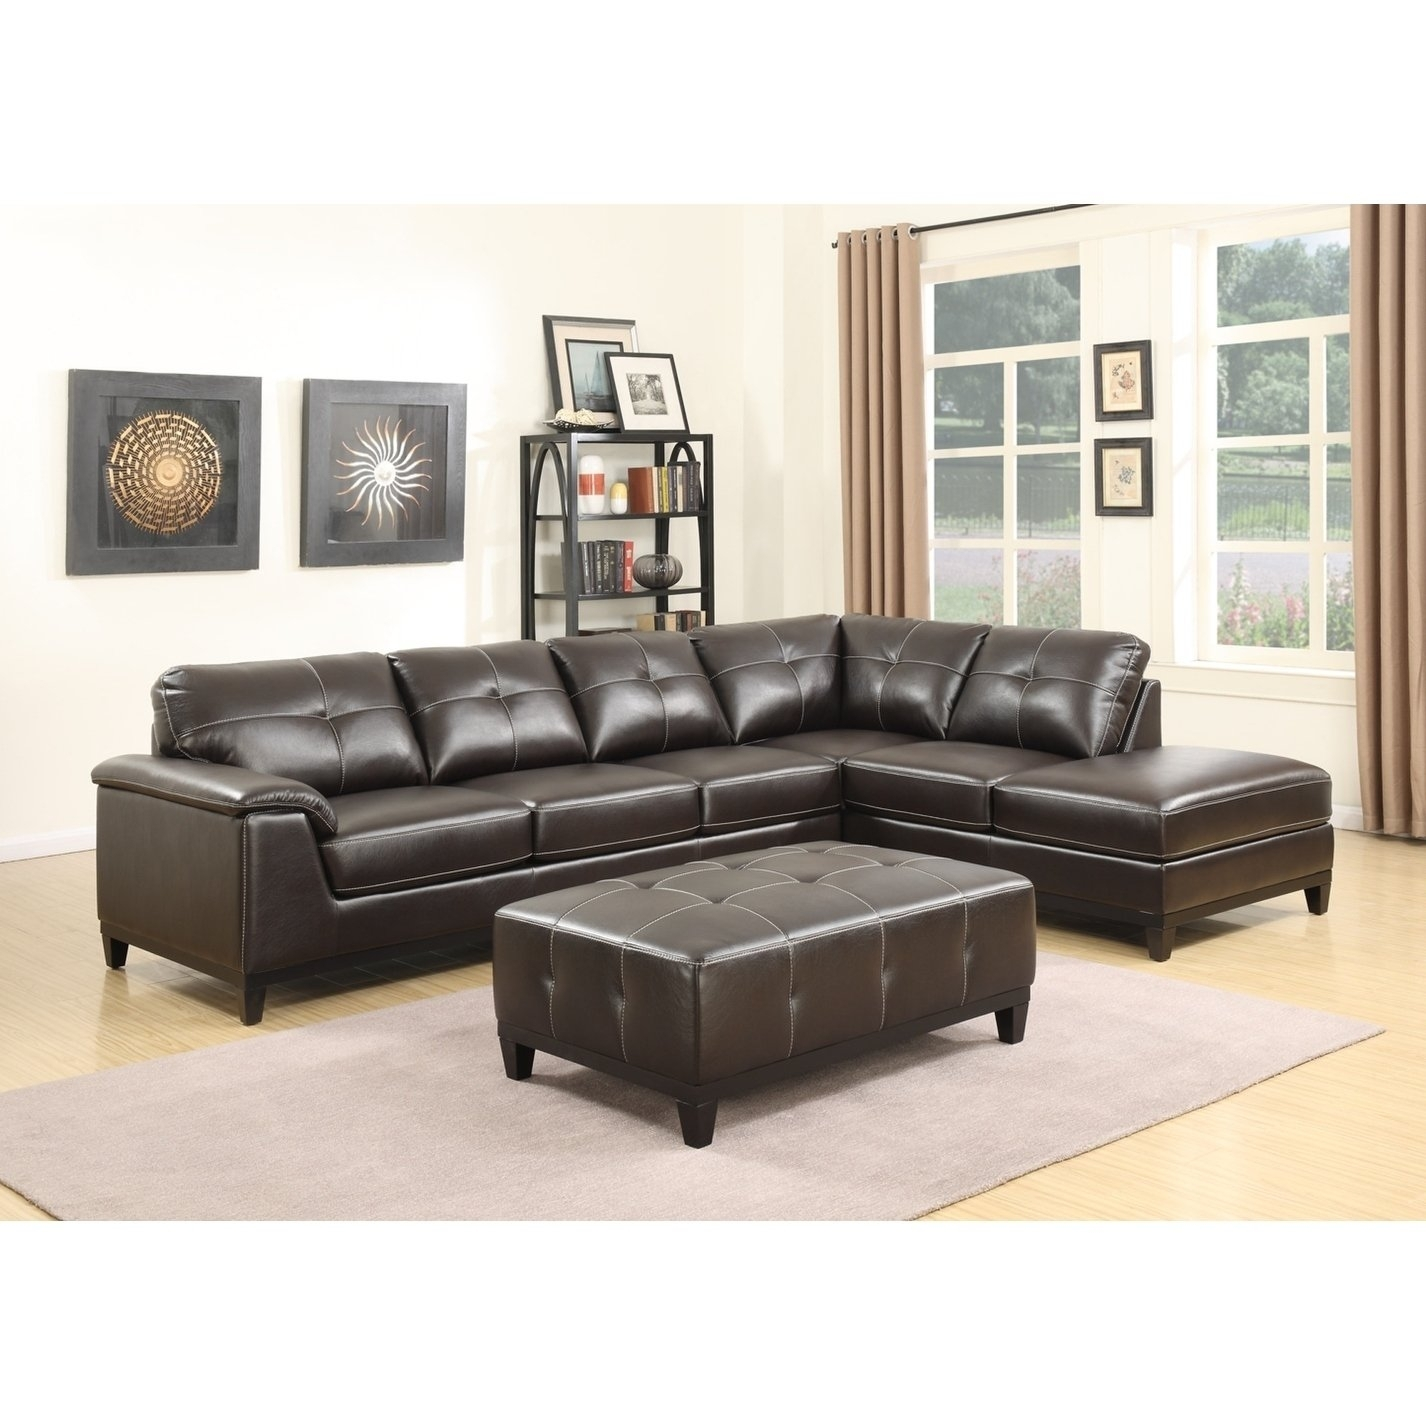 Shop Emerald Home Marquis 3 Piece Sectional With 6 Seats – Free For Haven Blue Steel 3 Piece Sectionals (Image 24 of 25)